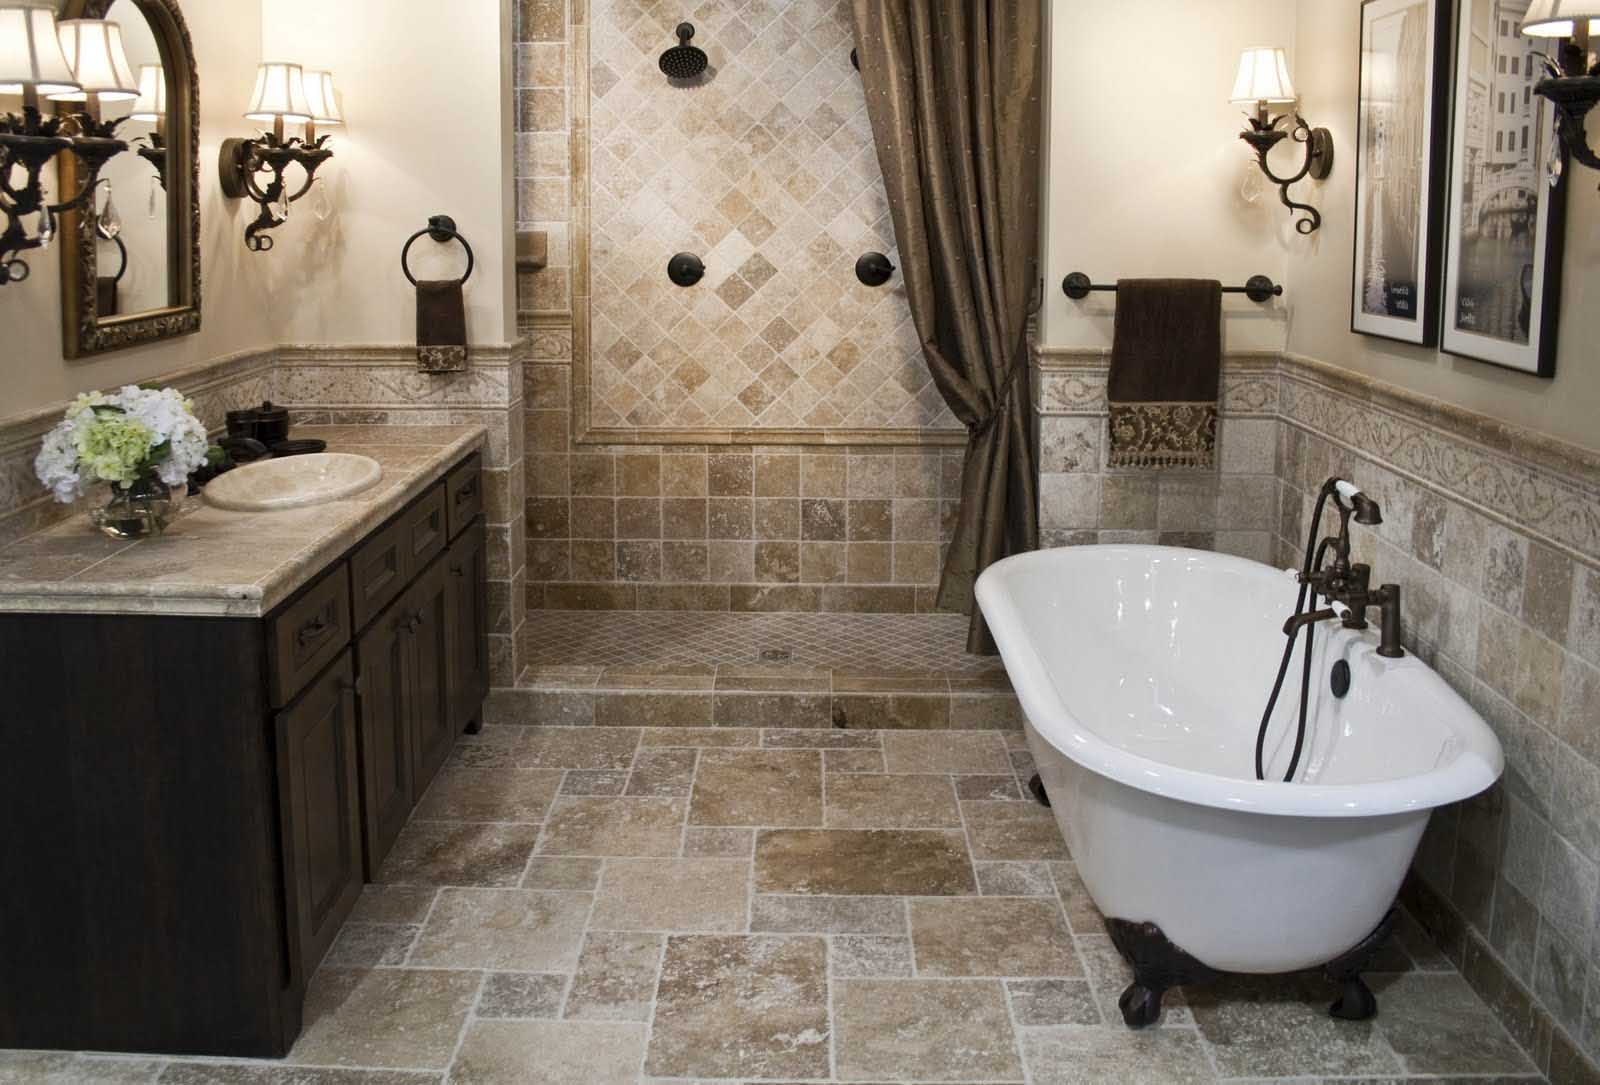 Classic Bathroom Remodel With Clawfoot White Tub Shower Zone With Dark  Shower Curtain Some Classic Wall